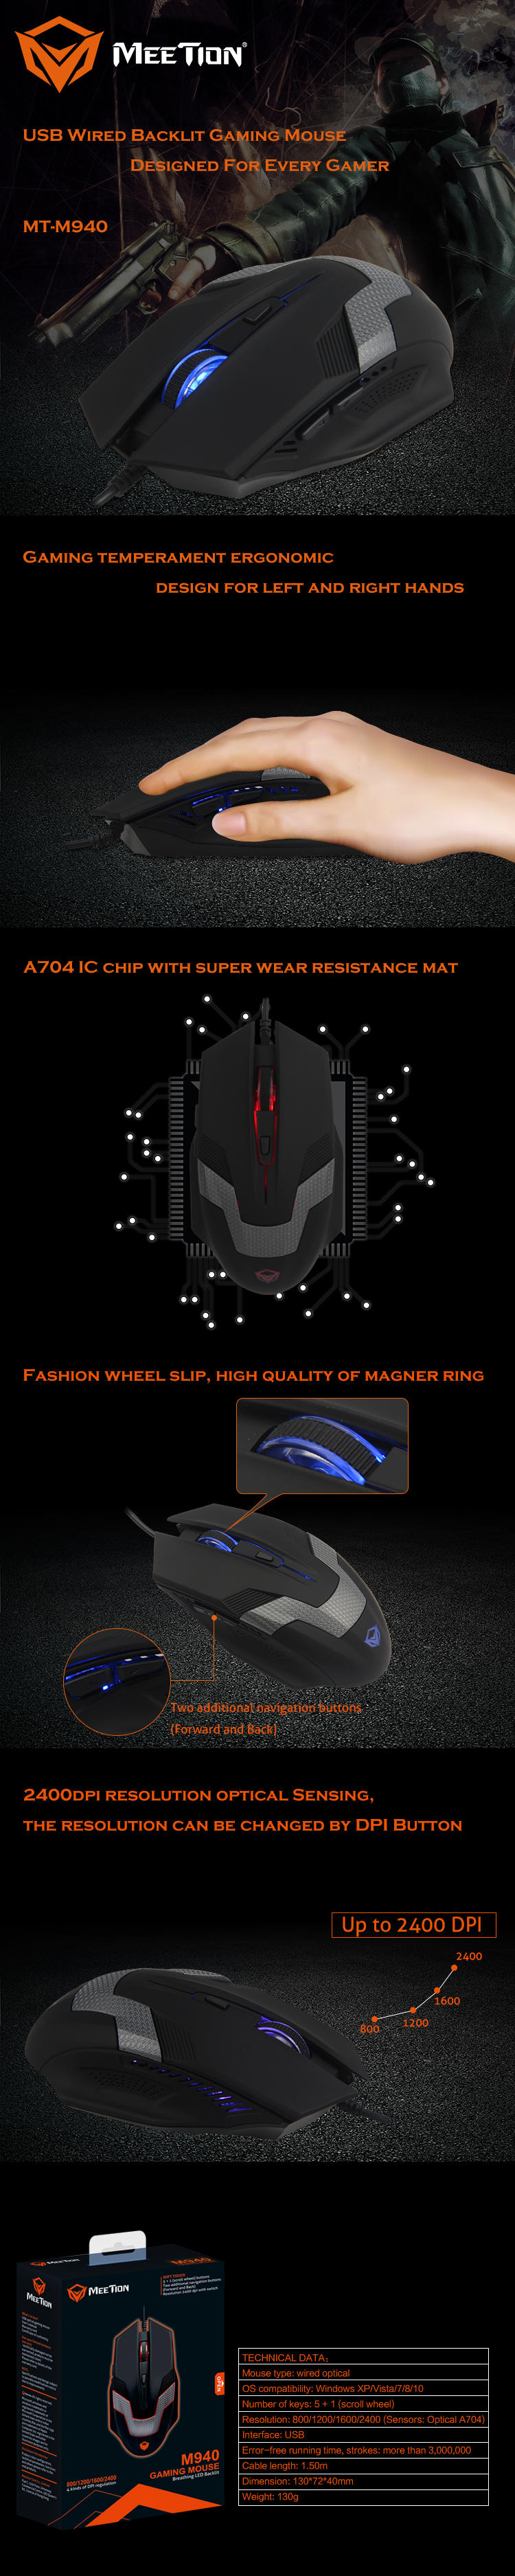 Meetion optical gaming mouse supplier-1